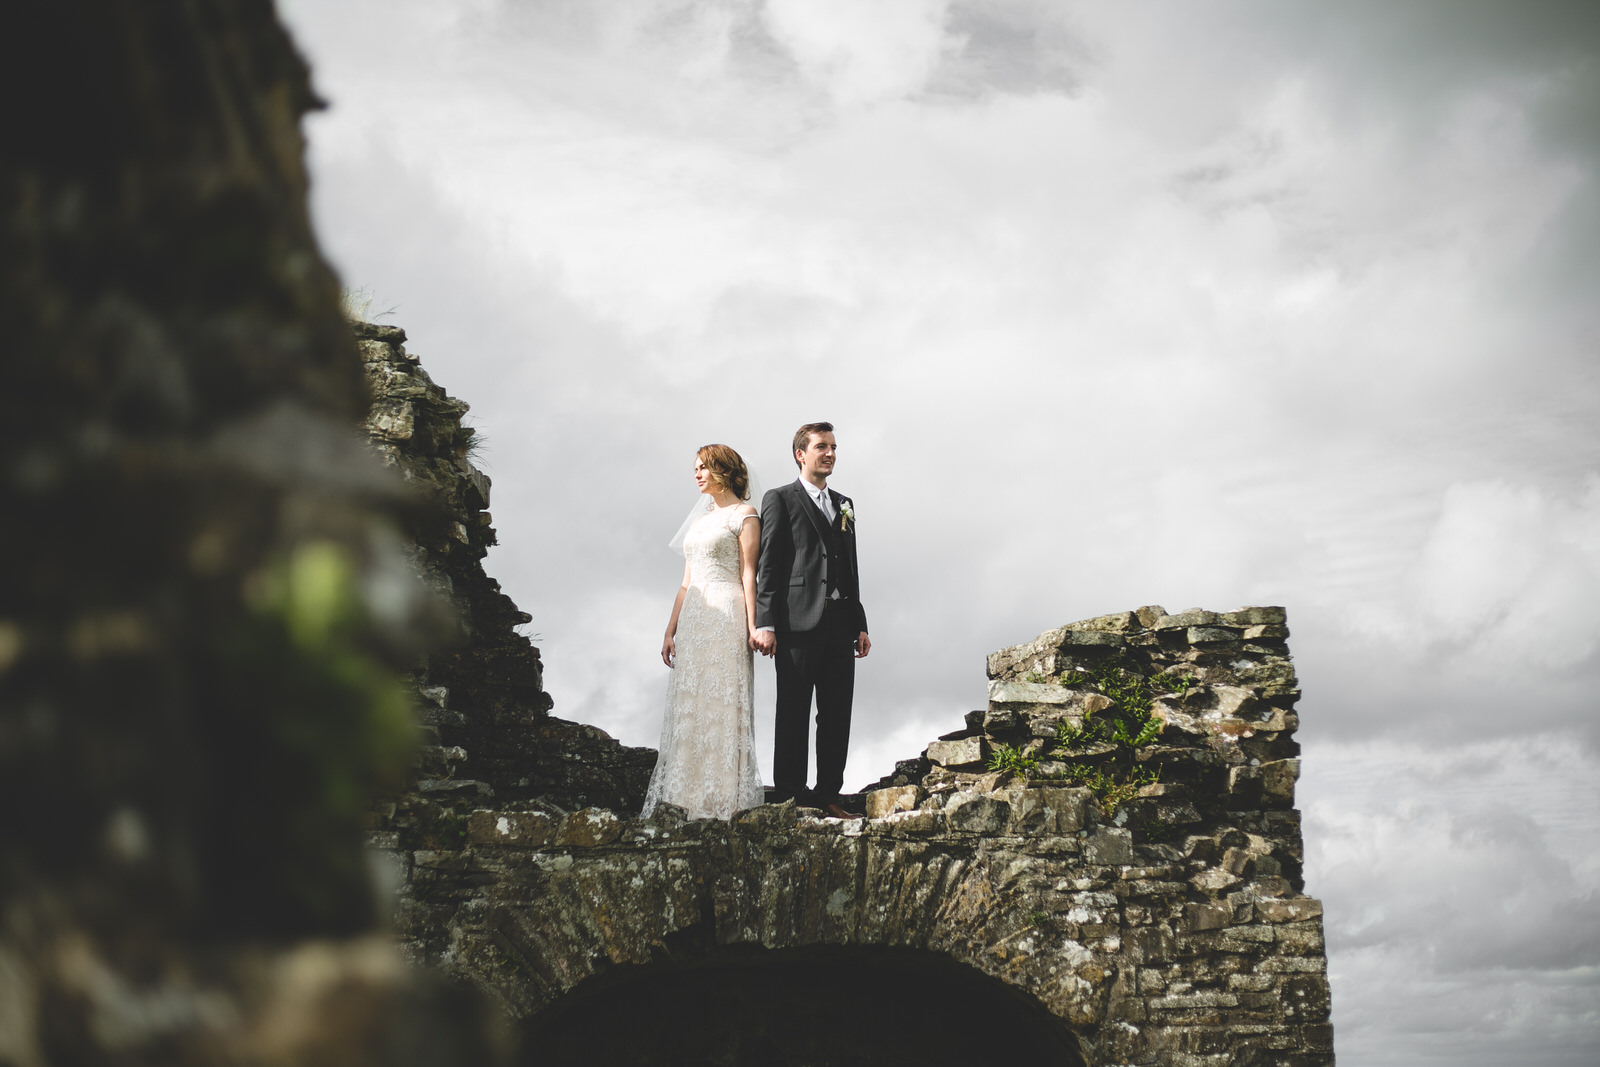 Cool wedding photography at old stone ruins